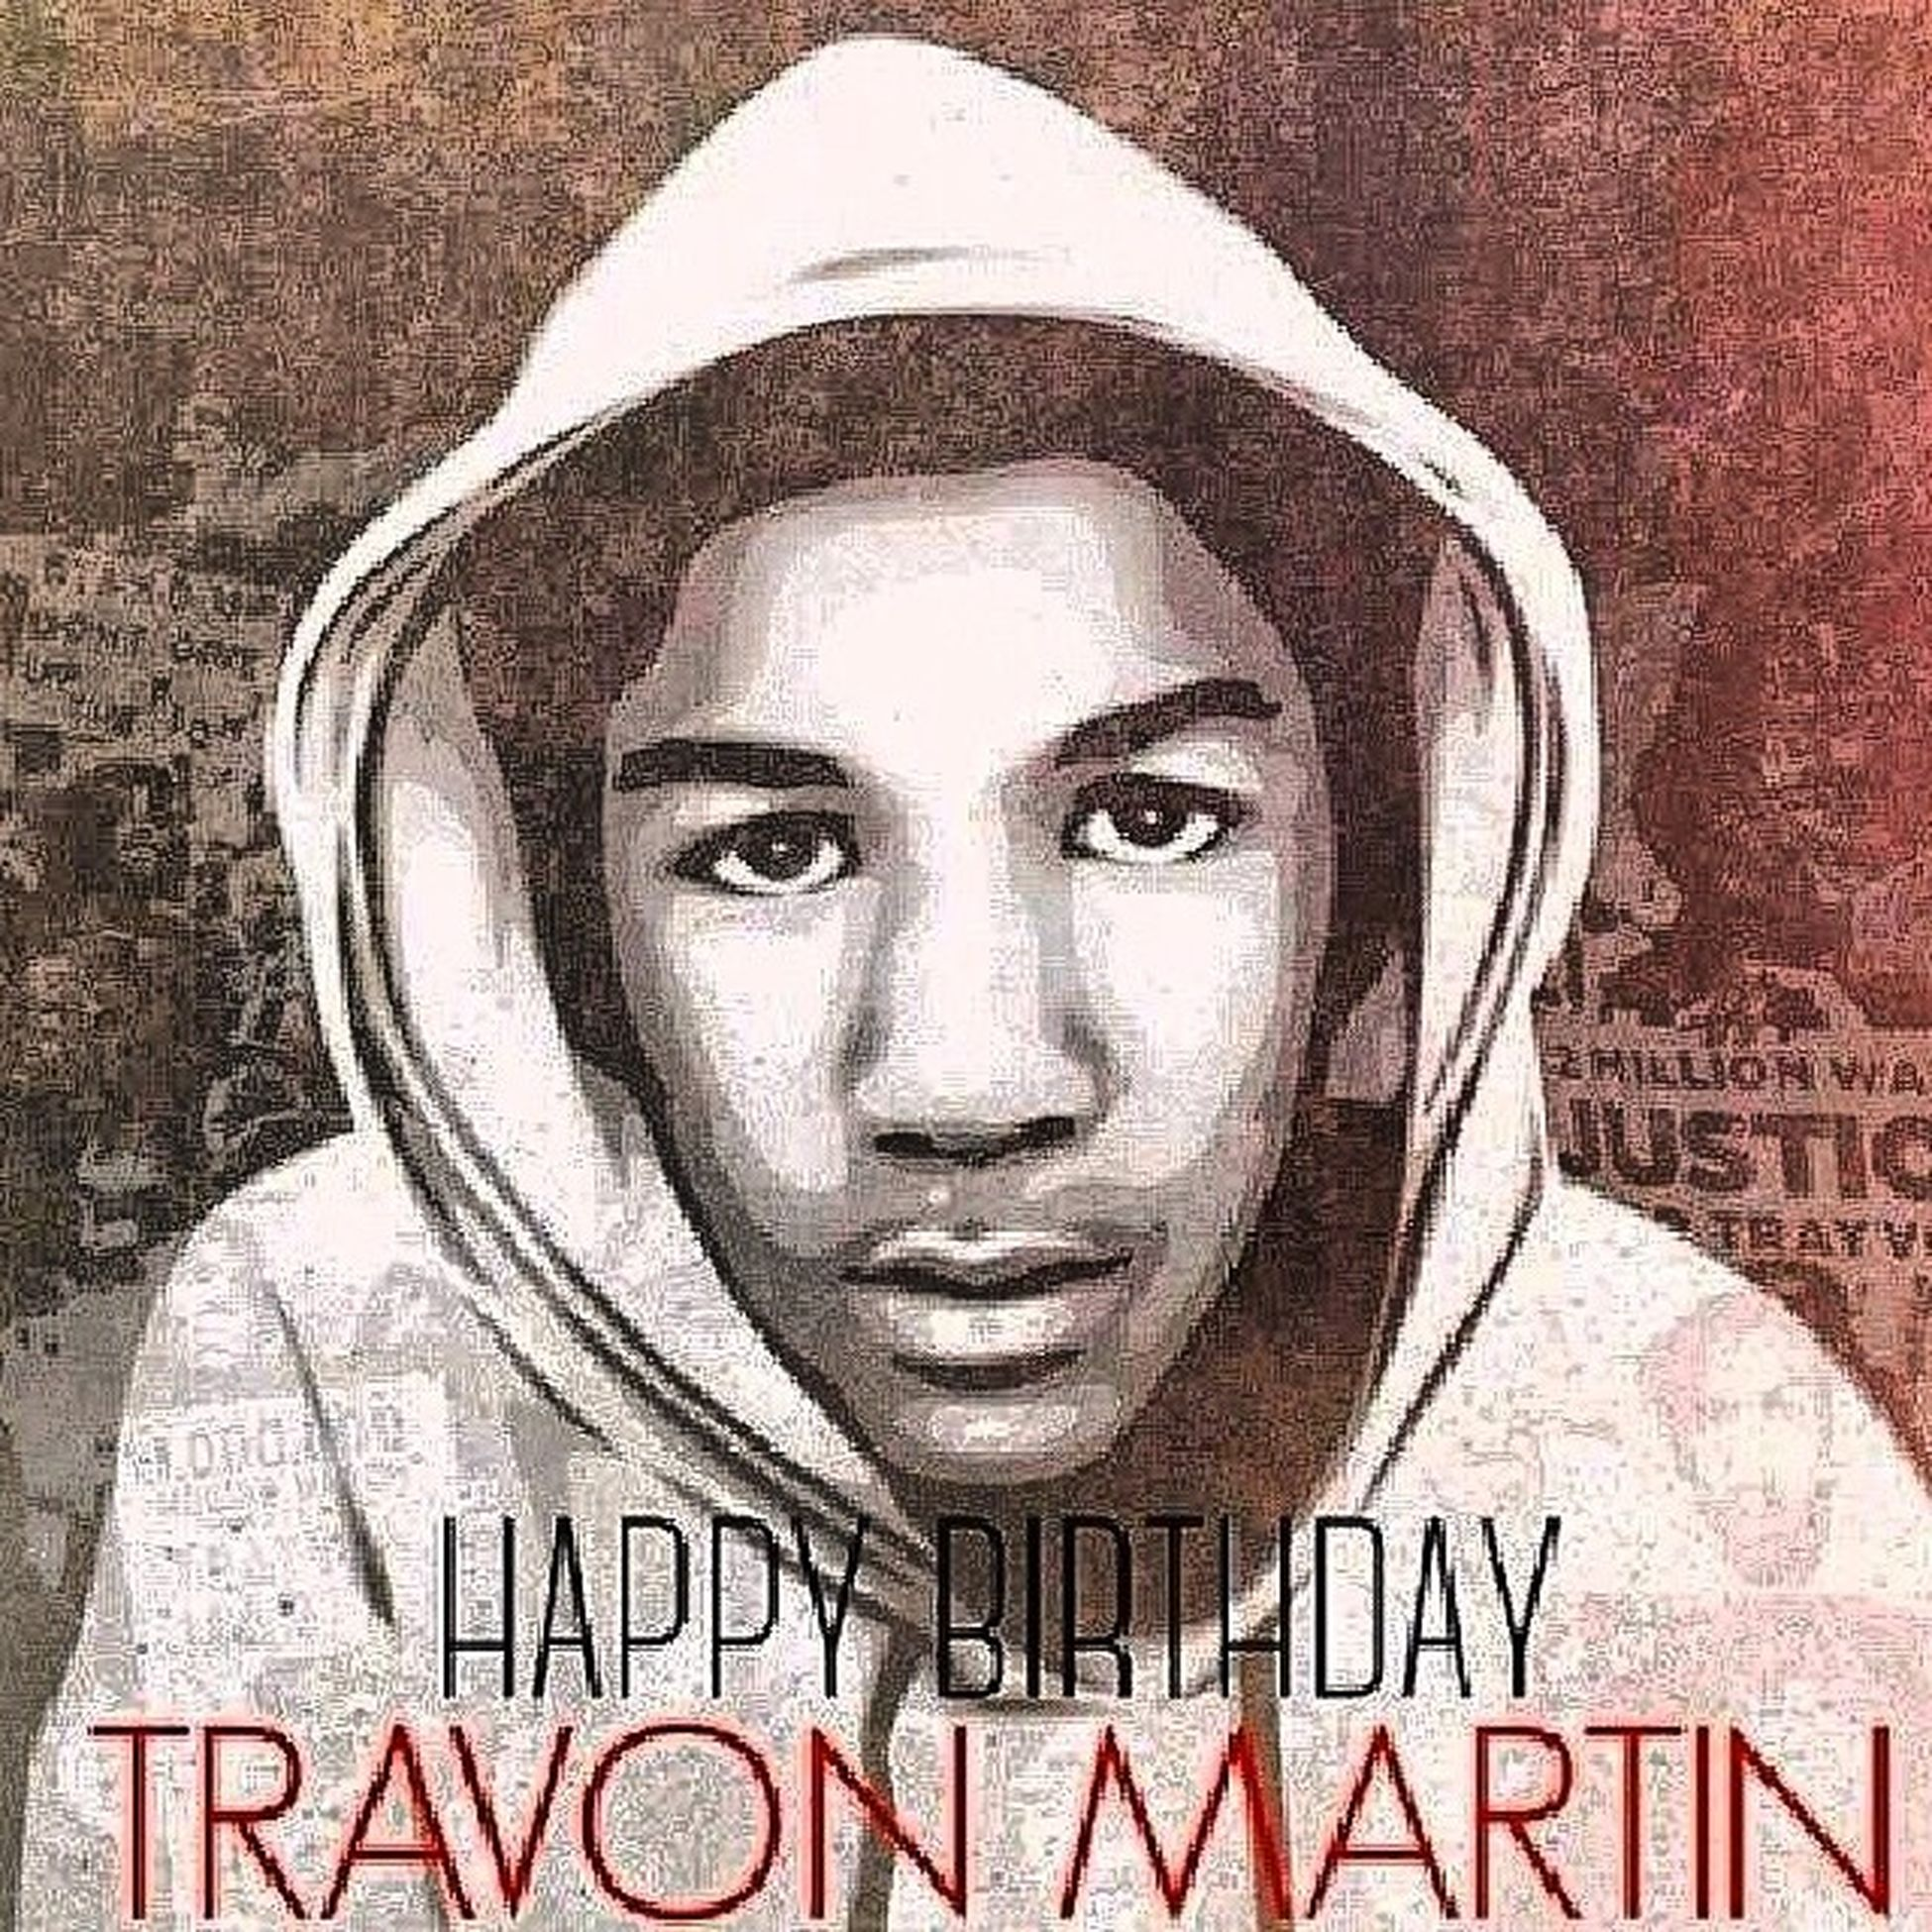 Happy bday R.I.P Travonmartin ???